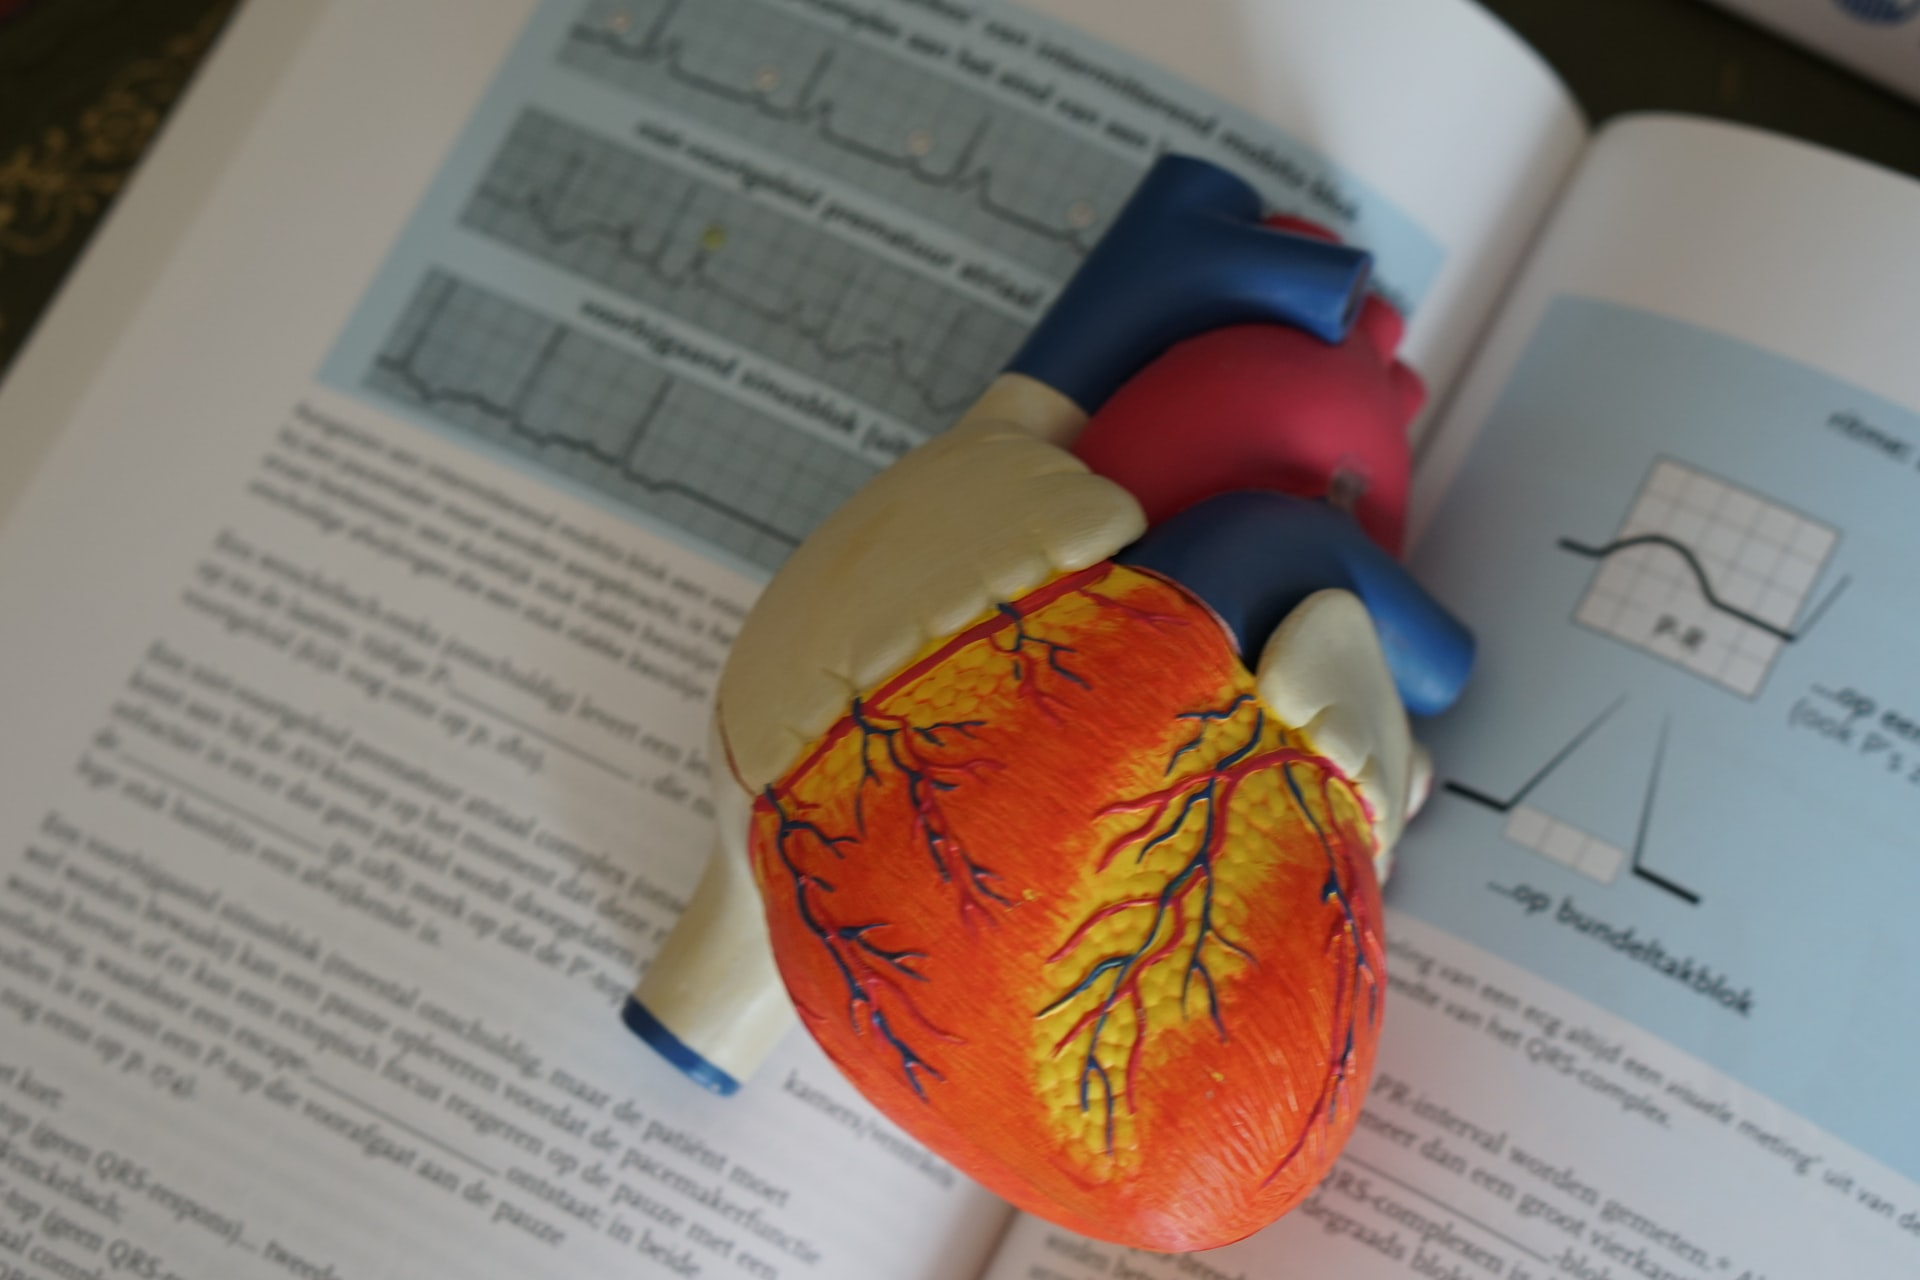 Organ donation pros and cons essay citing website articles in apa format